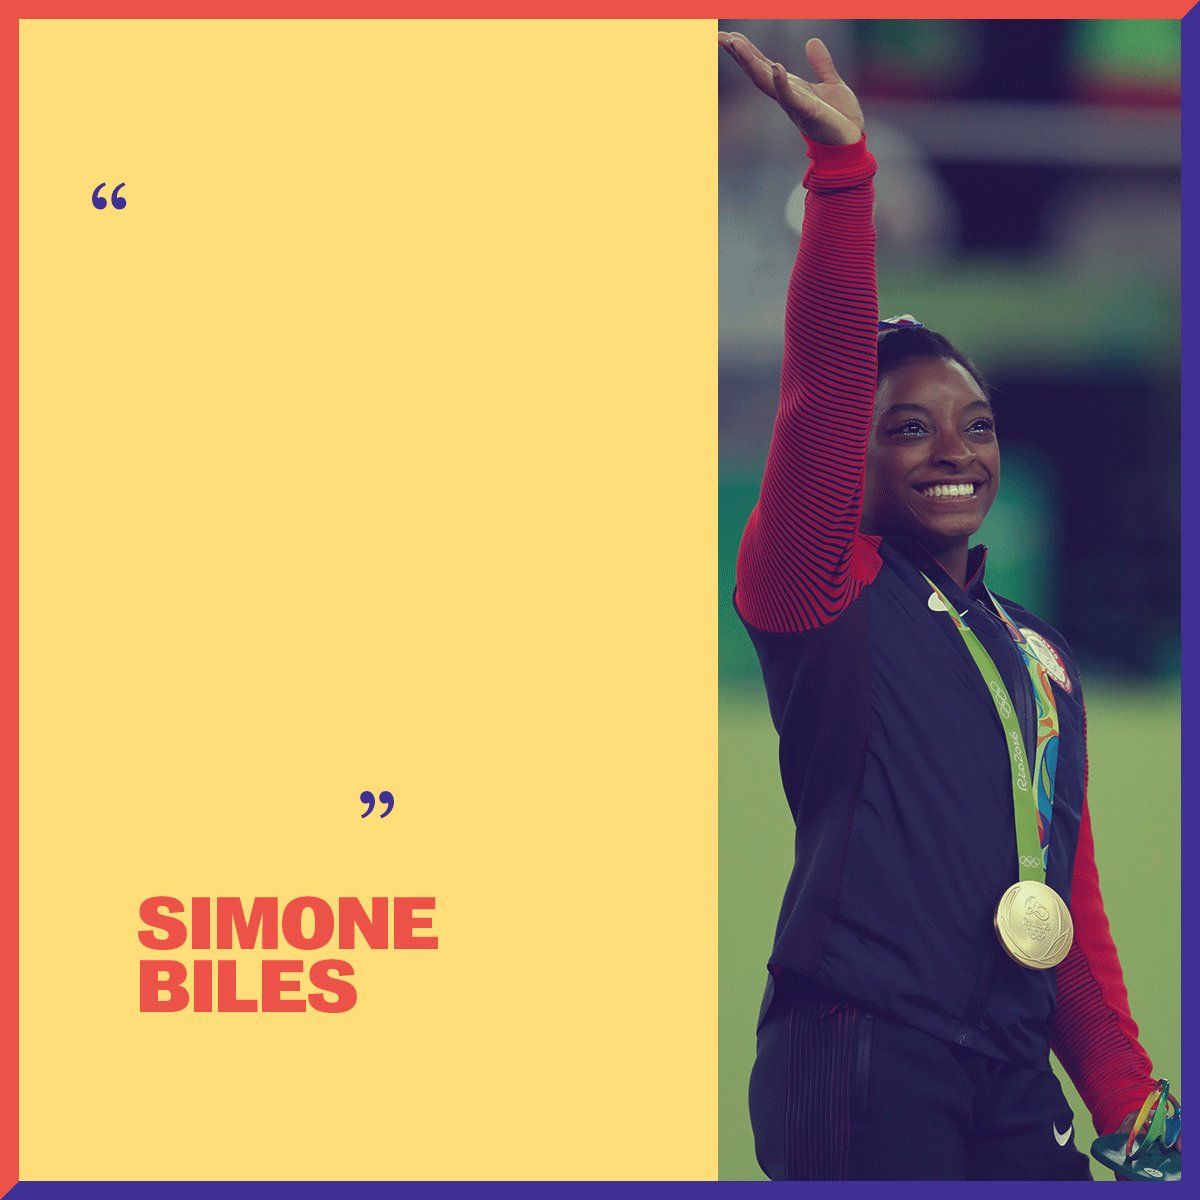 Decorated gymnast @Simone_Biles was six years old when she was introduced to gymnastics and insisted her parents enroll her at the gym. Years later, that same persistence would lead her to become the first woman gymnast to win three consecutive World All-Around titles.